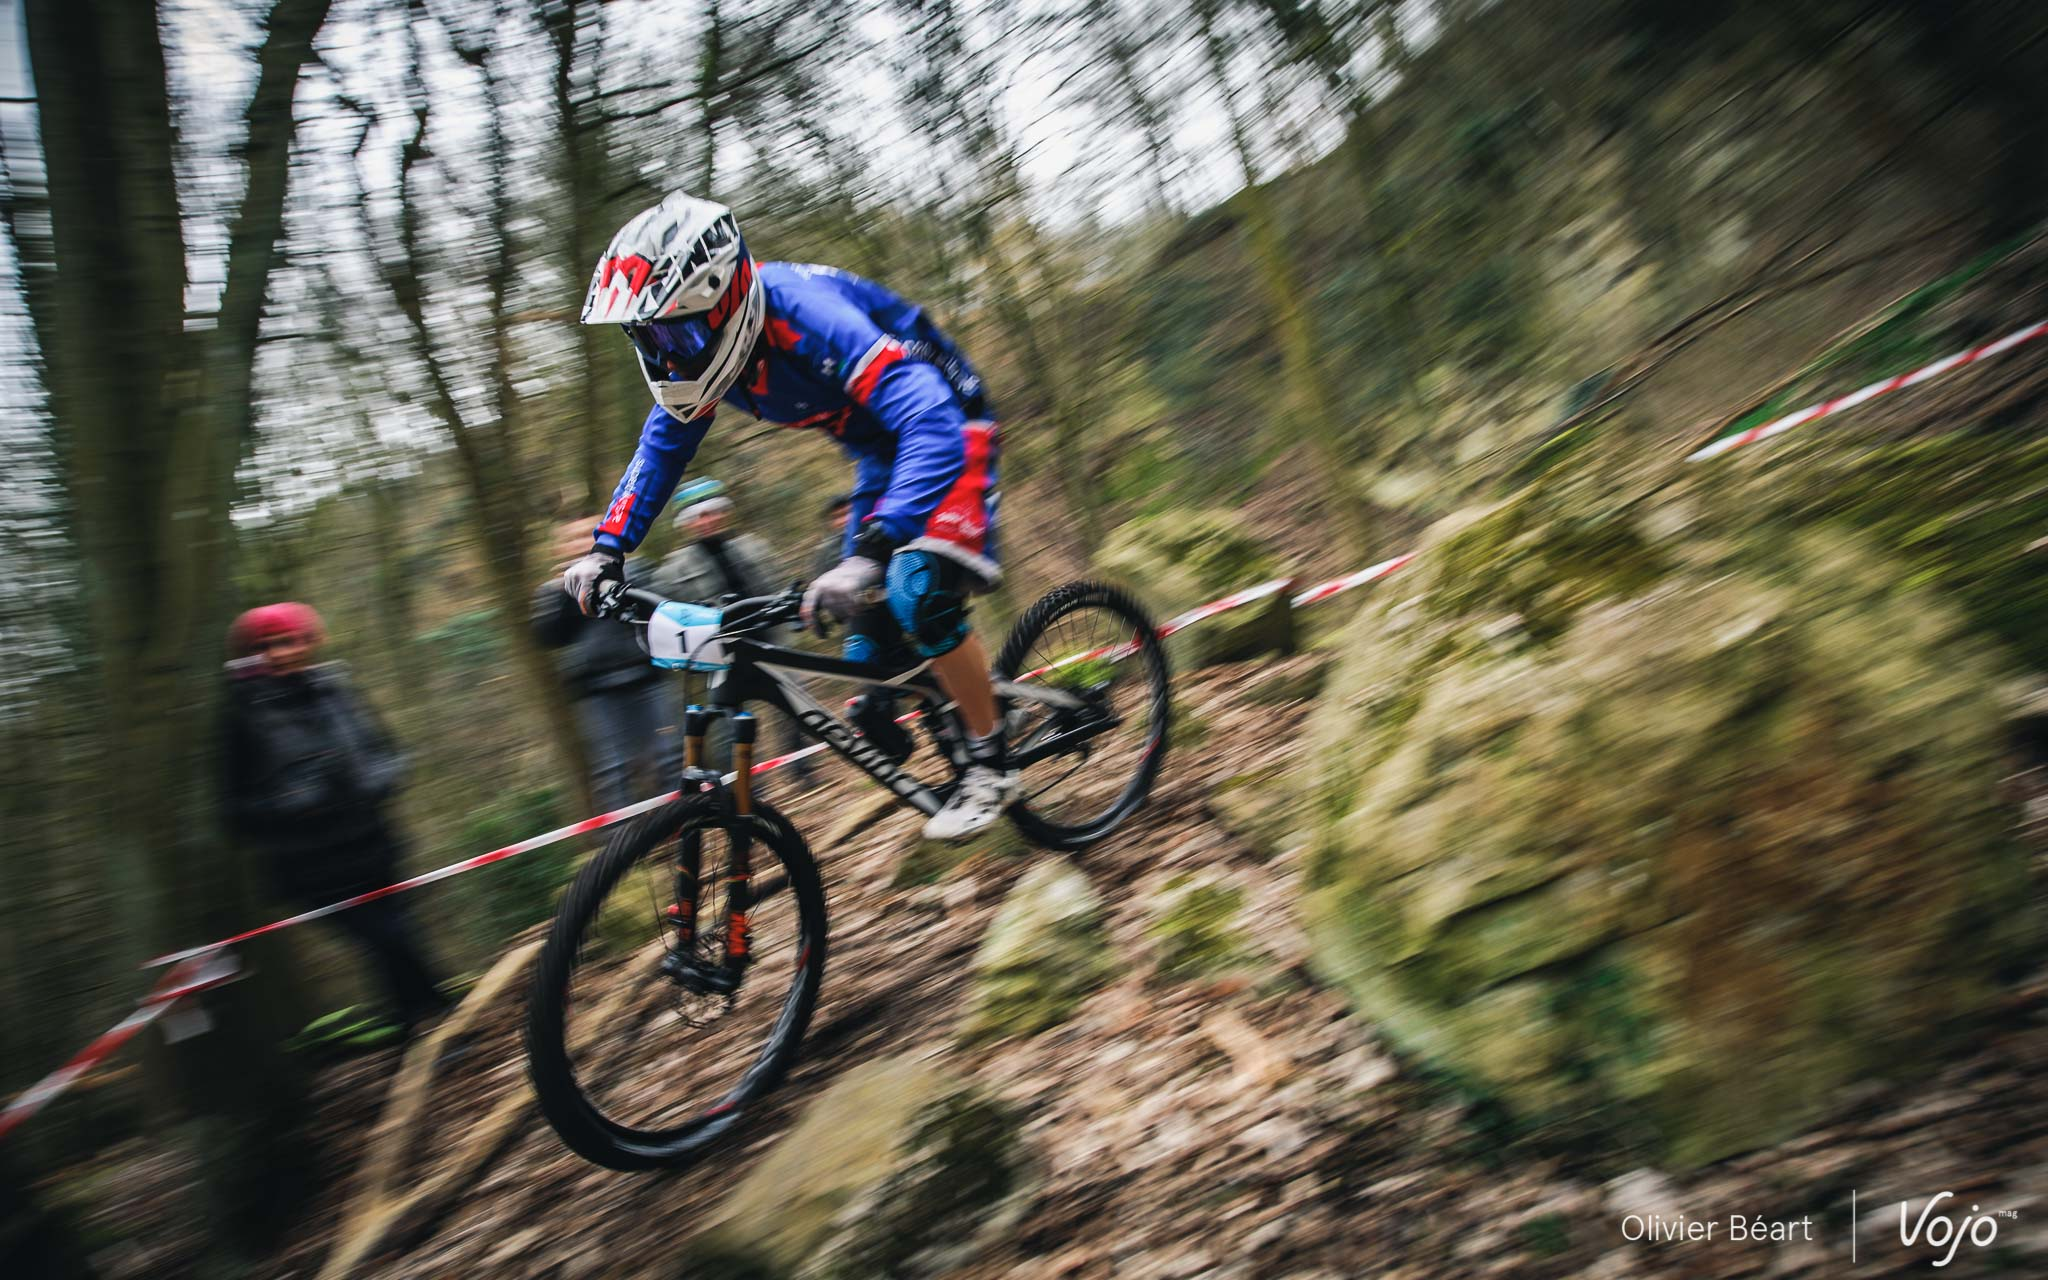 Belgian_Enduro_Cup_Chaudfontaine_2016_Copyright_OBeart_Vojomag-1